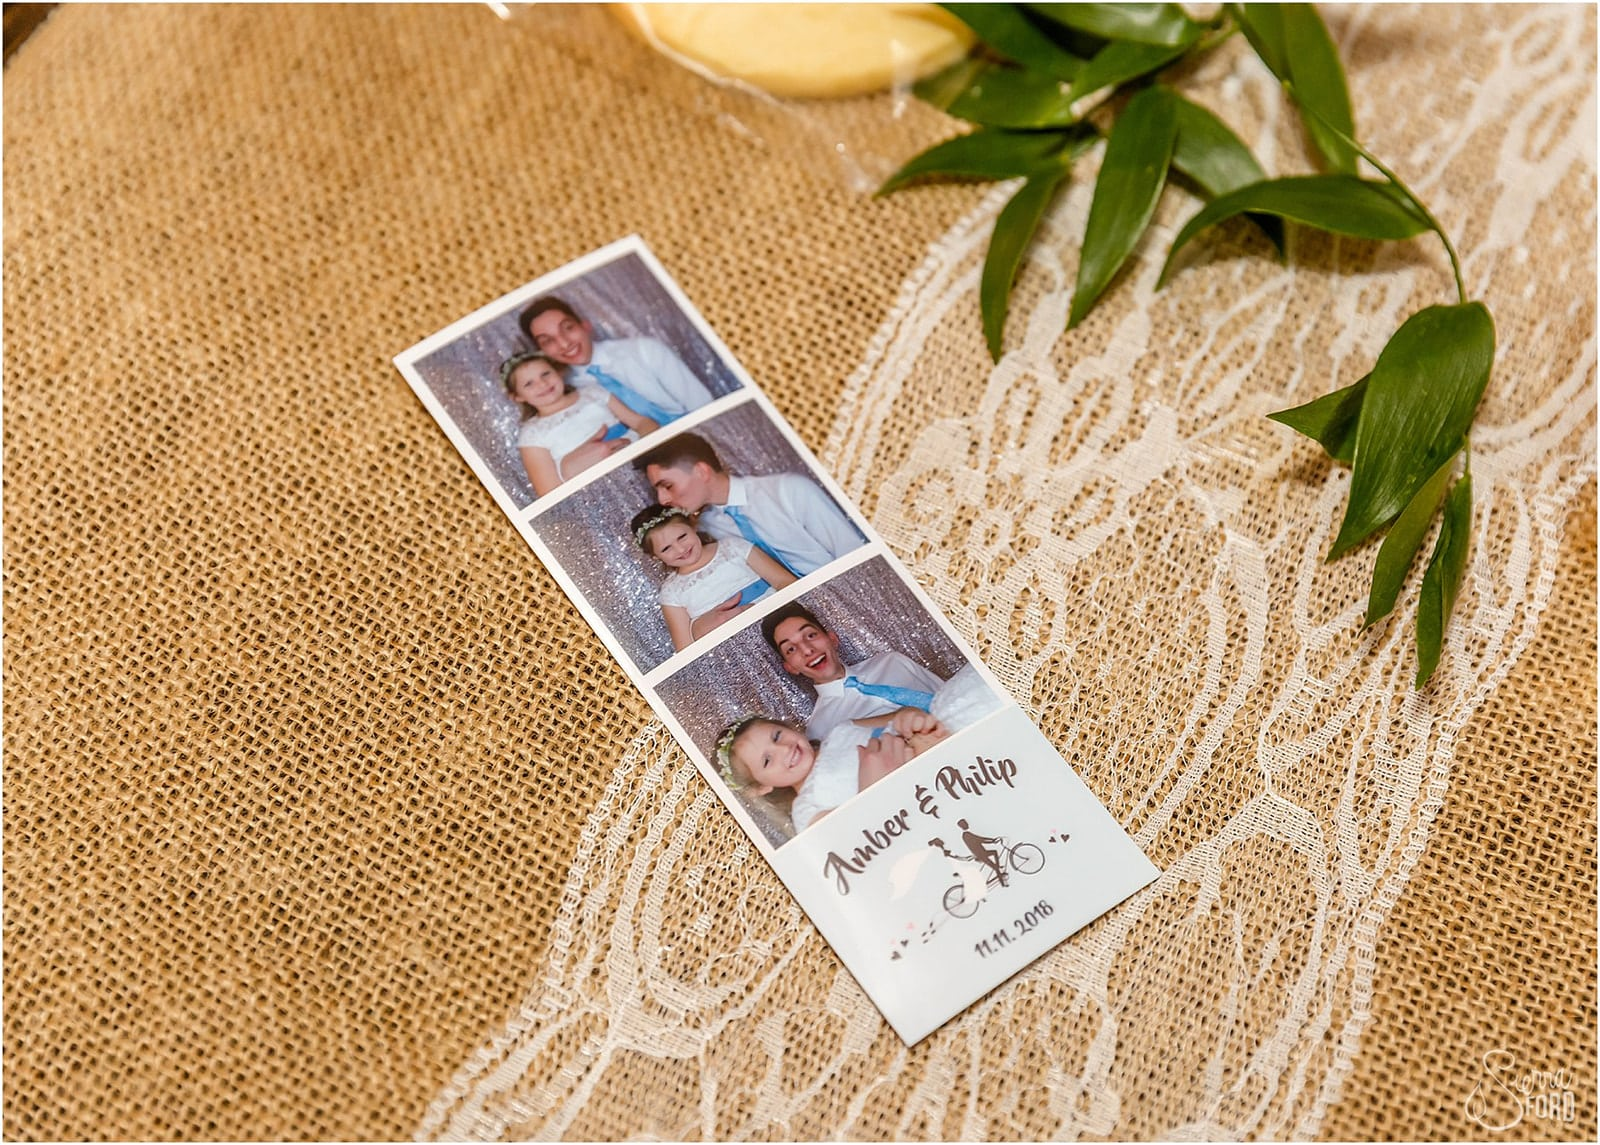 photo strip on burlap/lace table